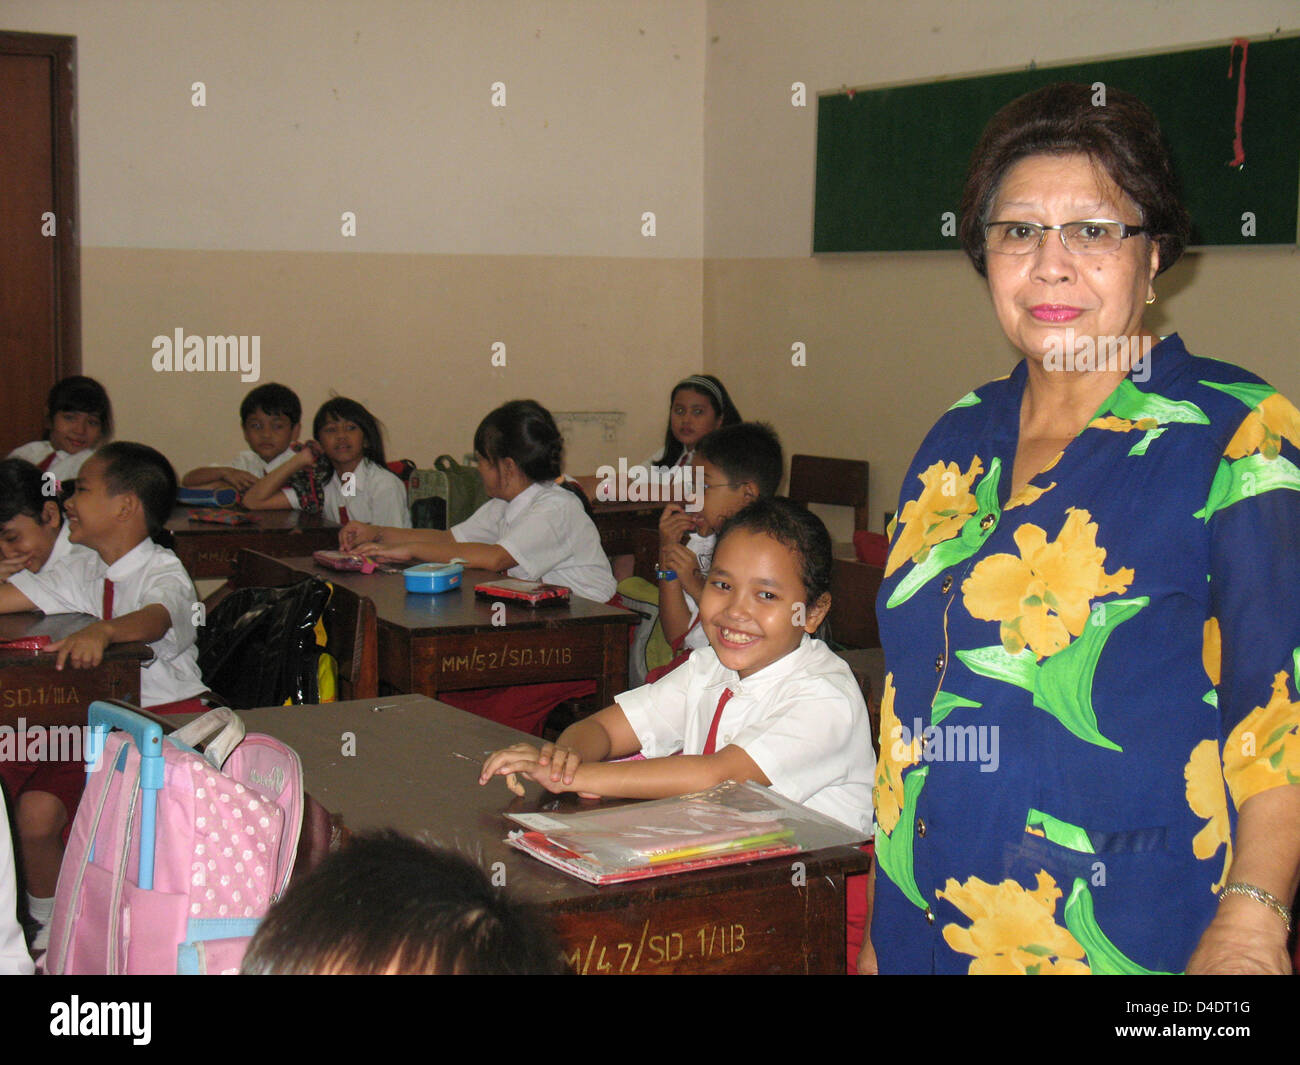 Indonesia school teacher Israella Darmawan is pictured in a class room of the 'St. Fransiskus Asisi' school - Stock Image